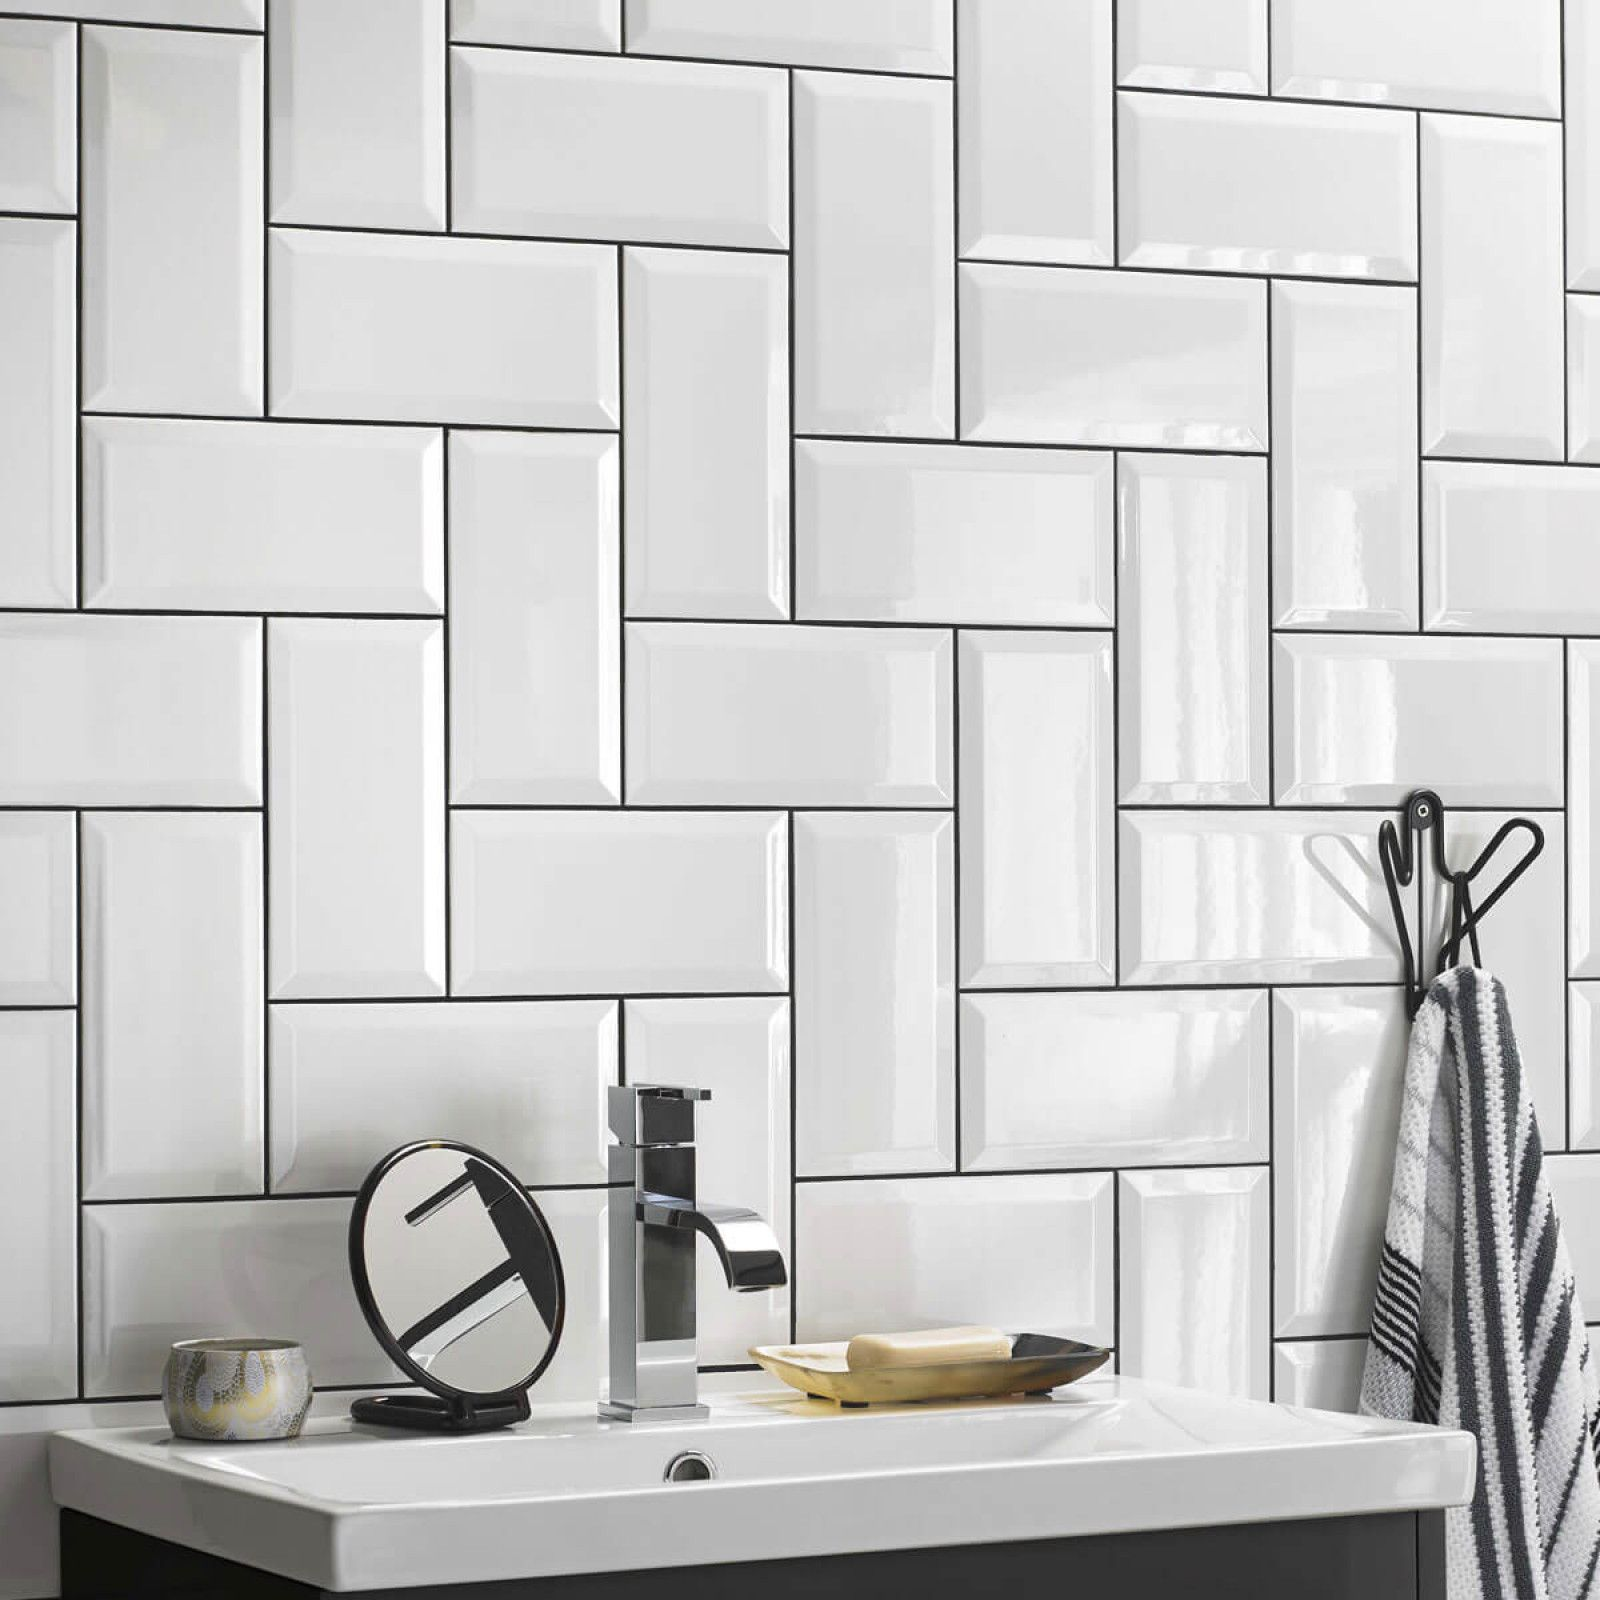 British Ceramic Tile Metro White Bevel Gloss Wall British Ceramic Tile White Bathroom Tiles Bathroom Tile Designs Brick Bathroom